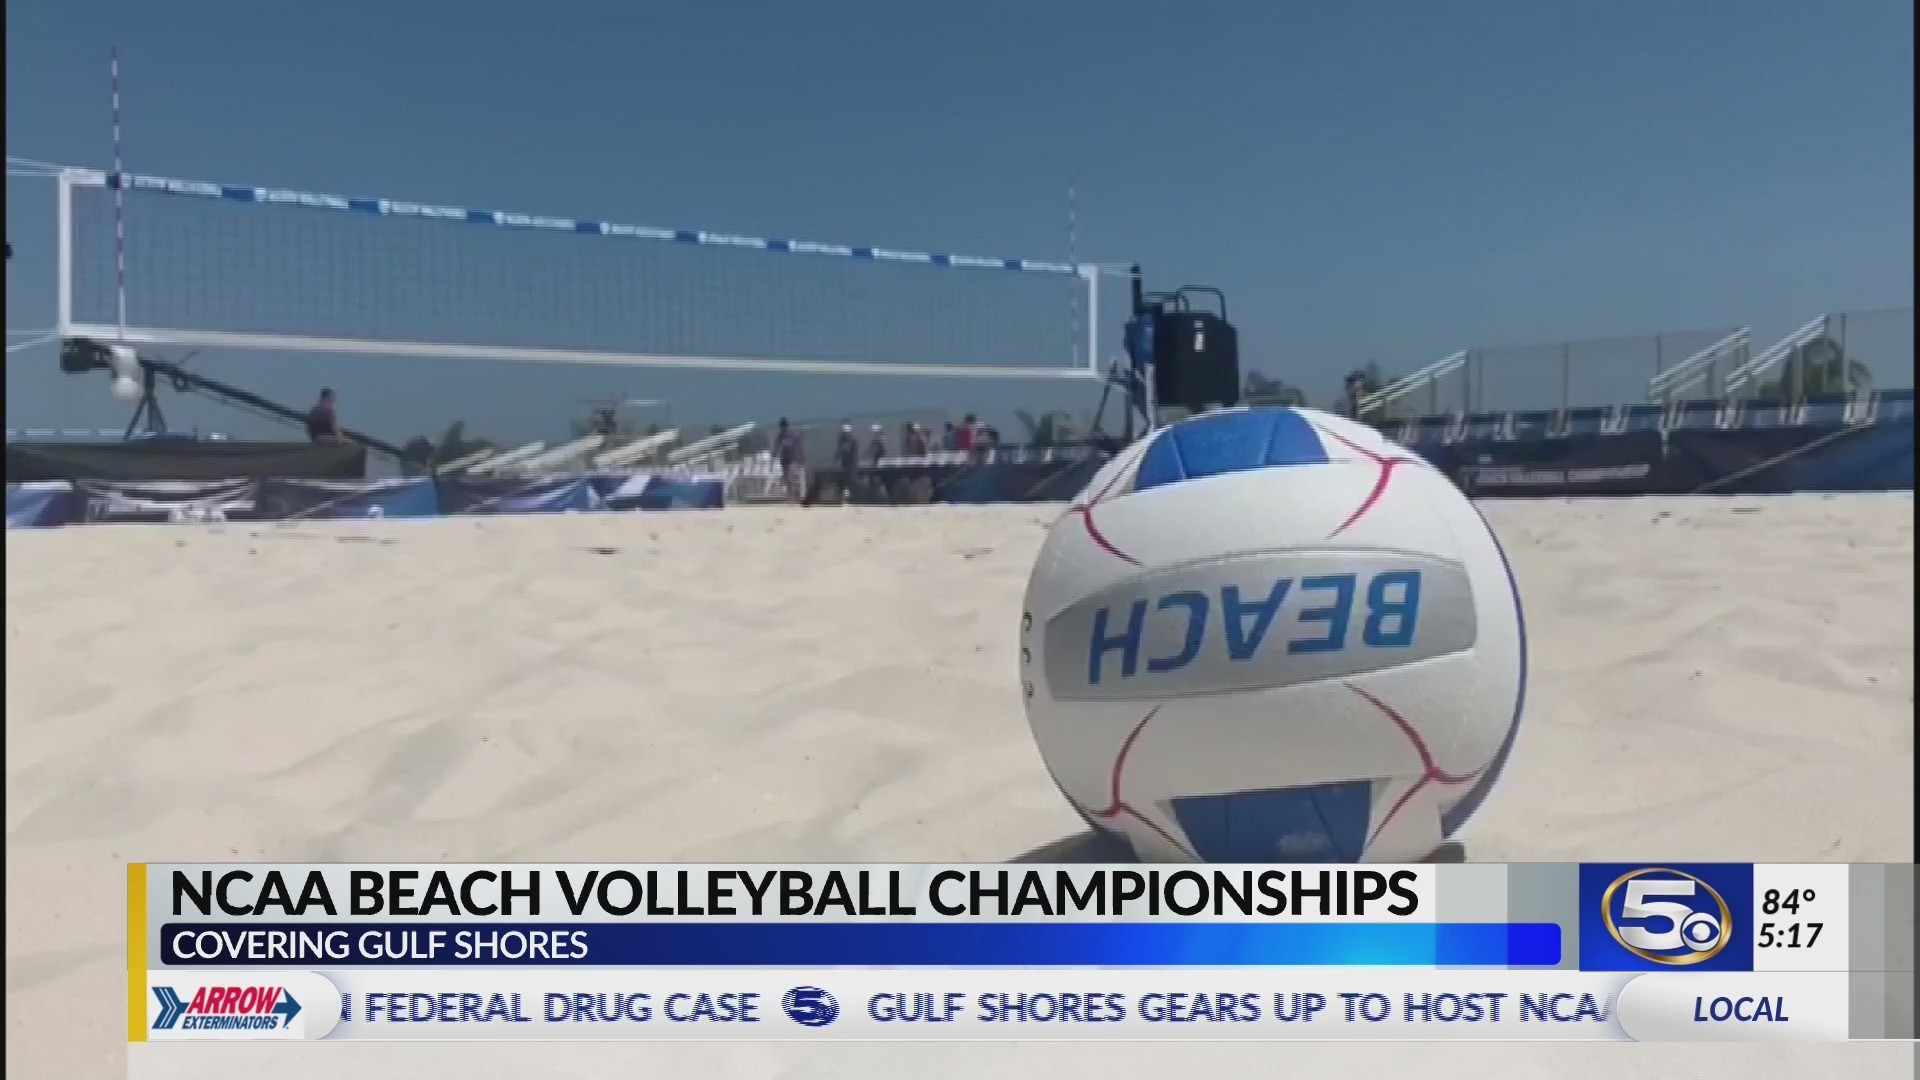 Gulf Shores gears up to host NCAA Beach Volleyball Tournament